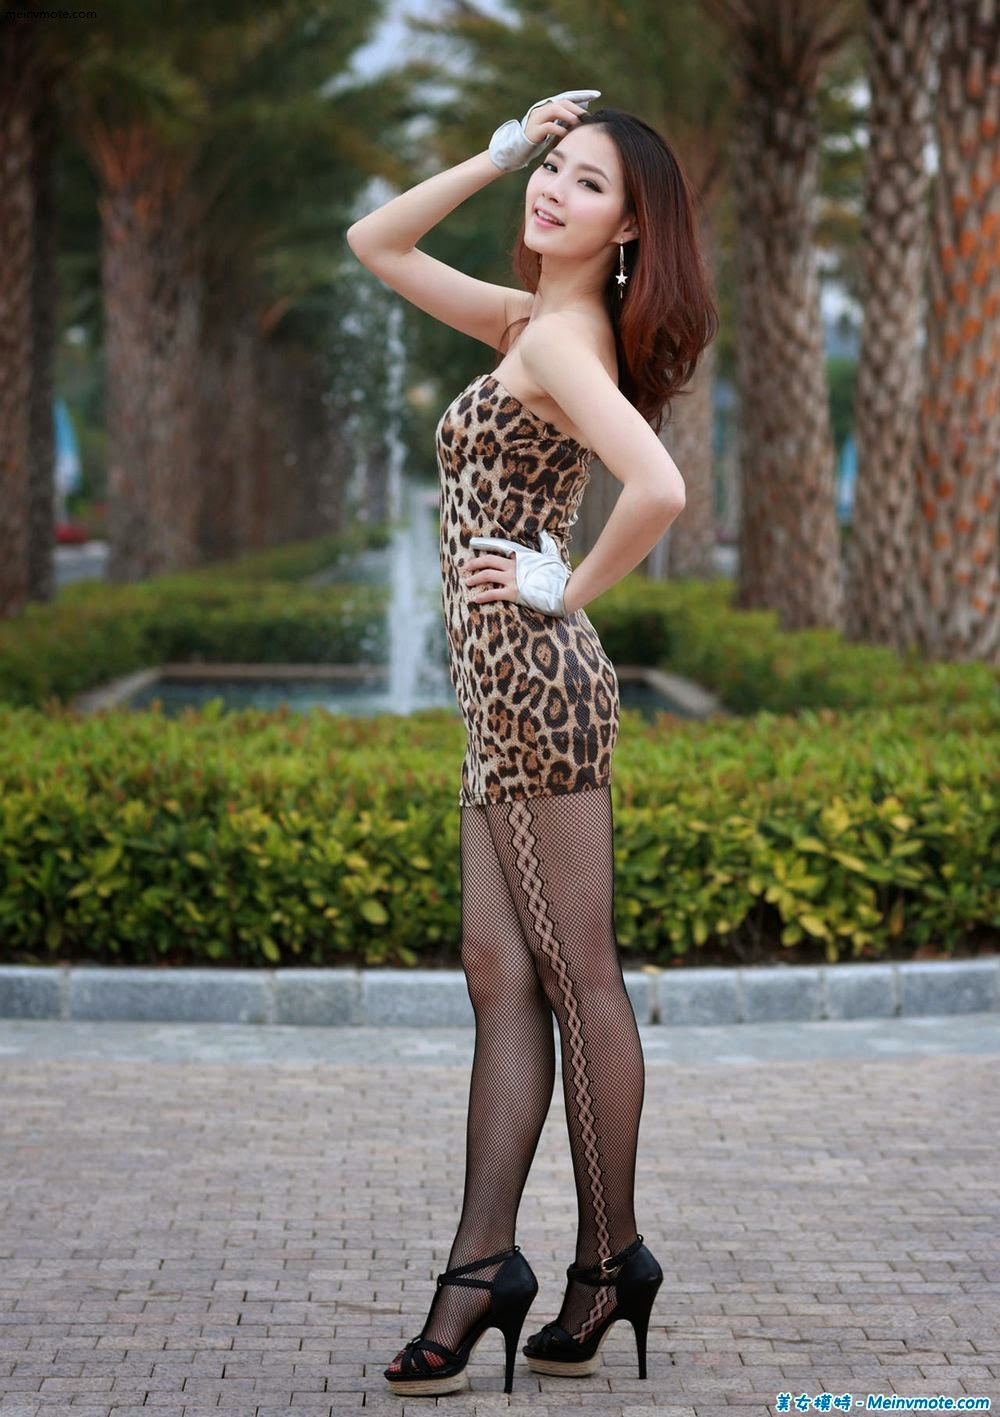 Small leopard skirt seductive posture